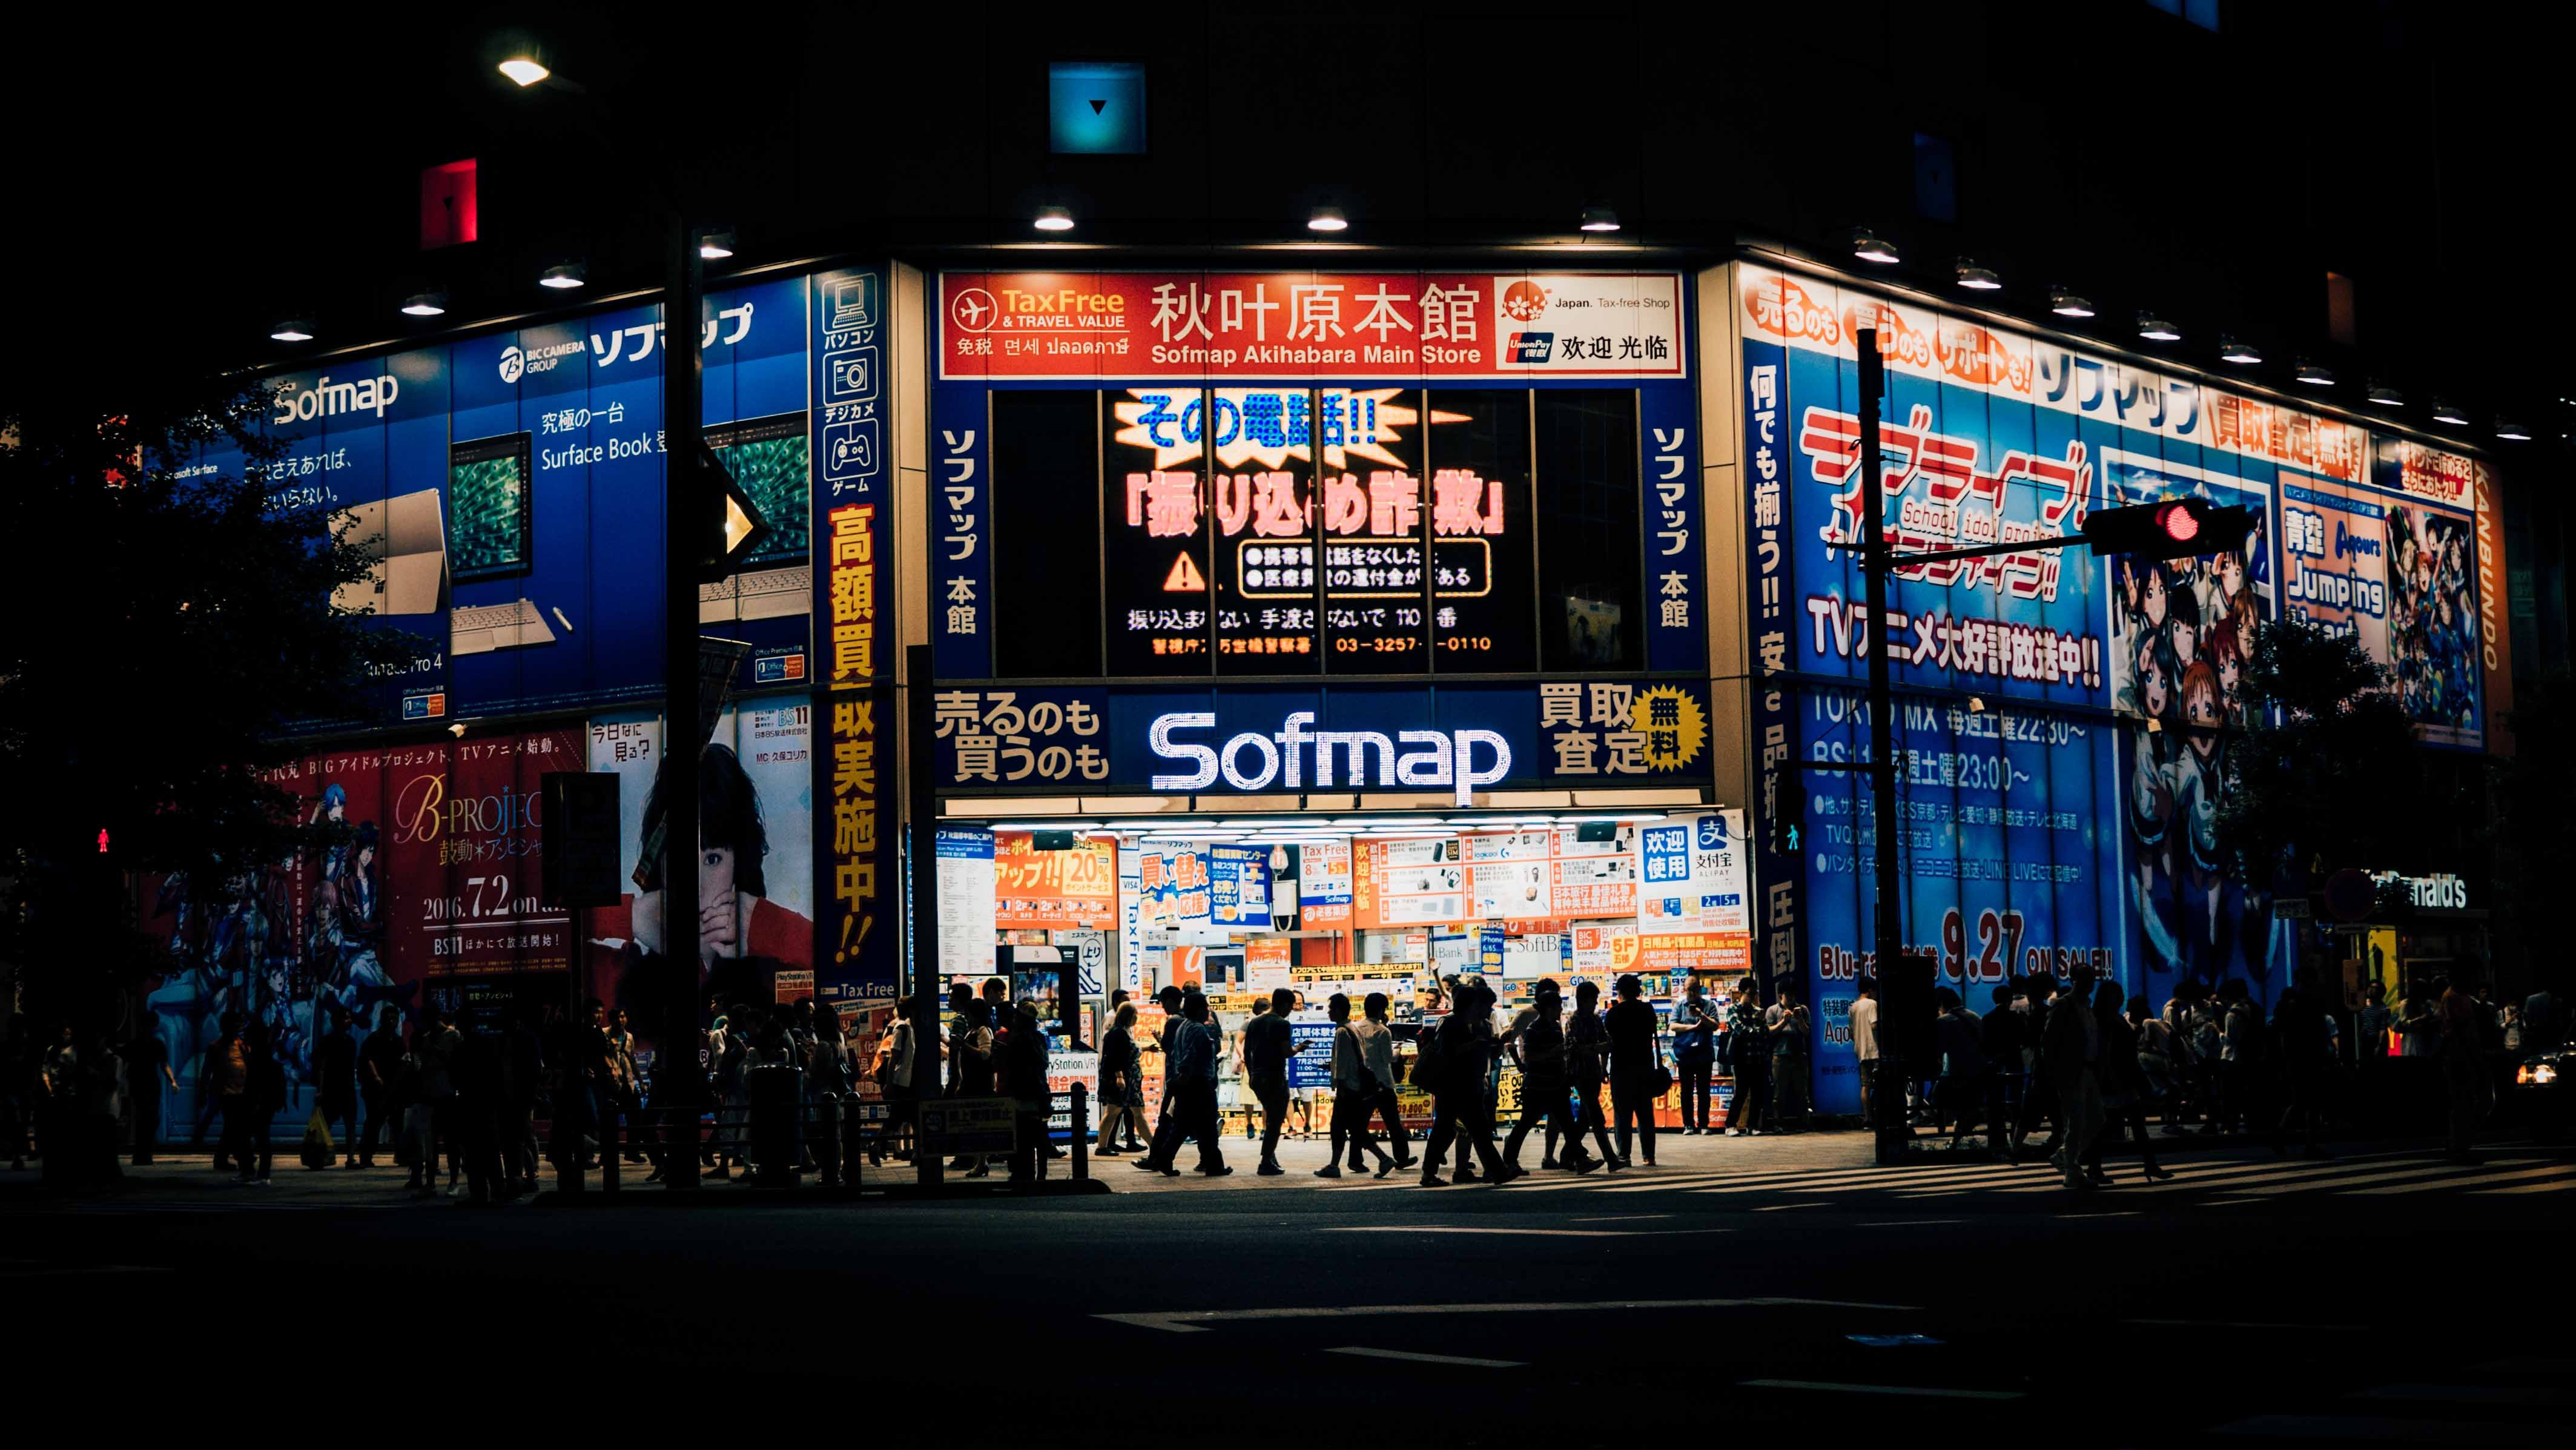 Silhouettes of pedestrians crowding in front of a building covered with advertisements